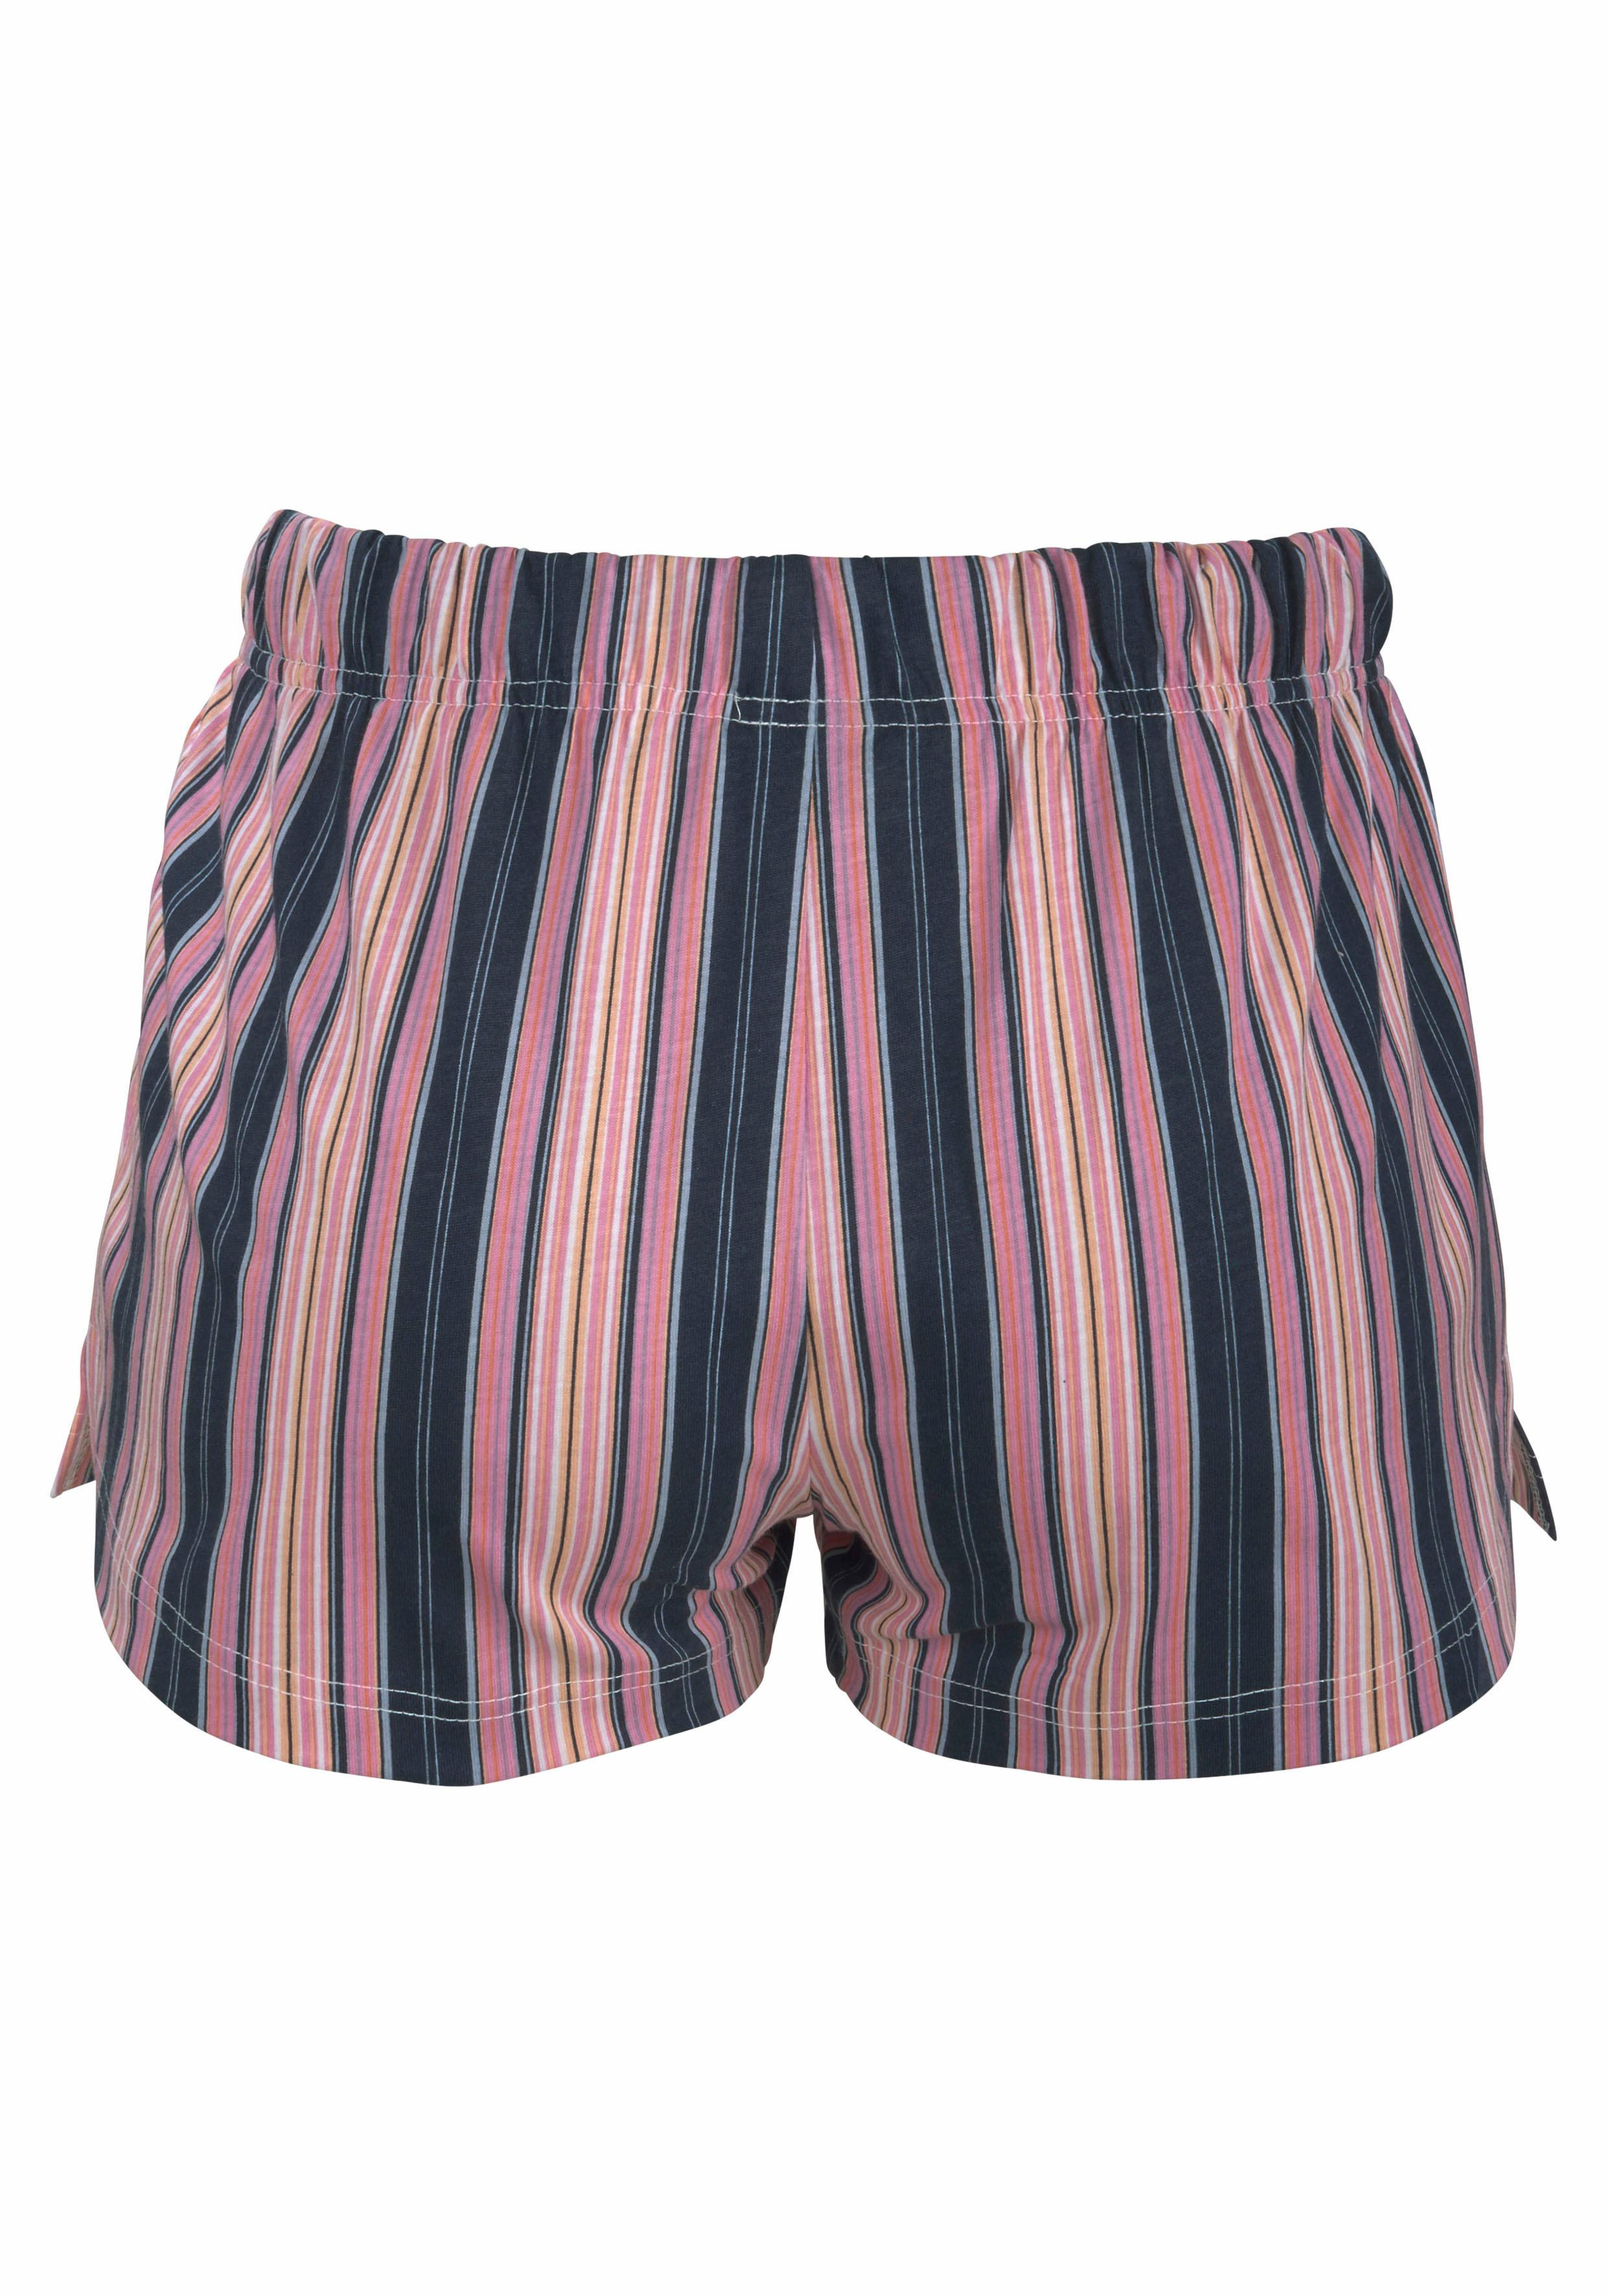 Vivance Dreams Schlafshorts